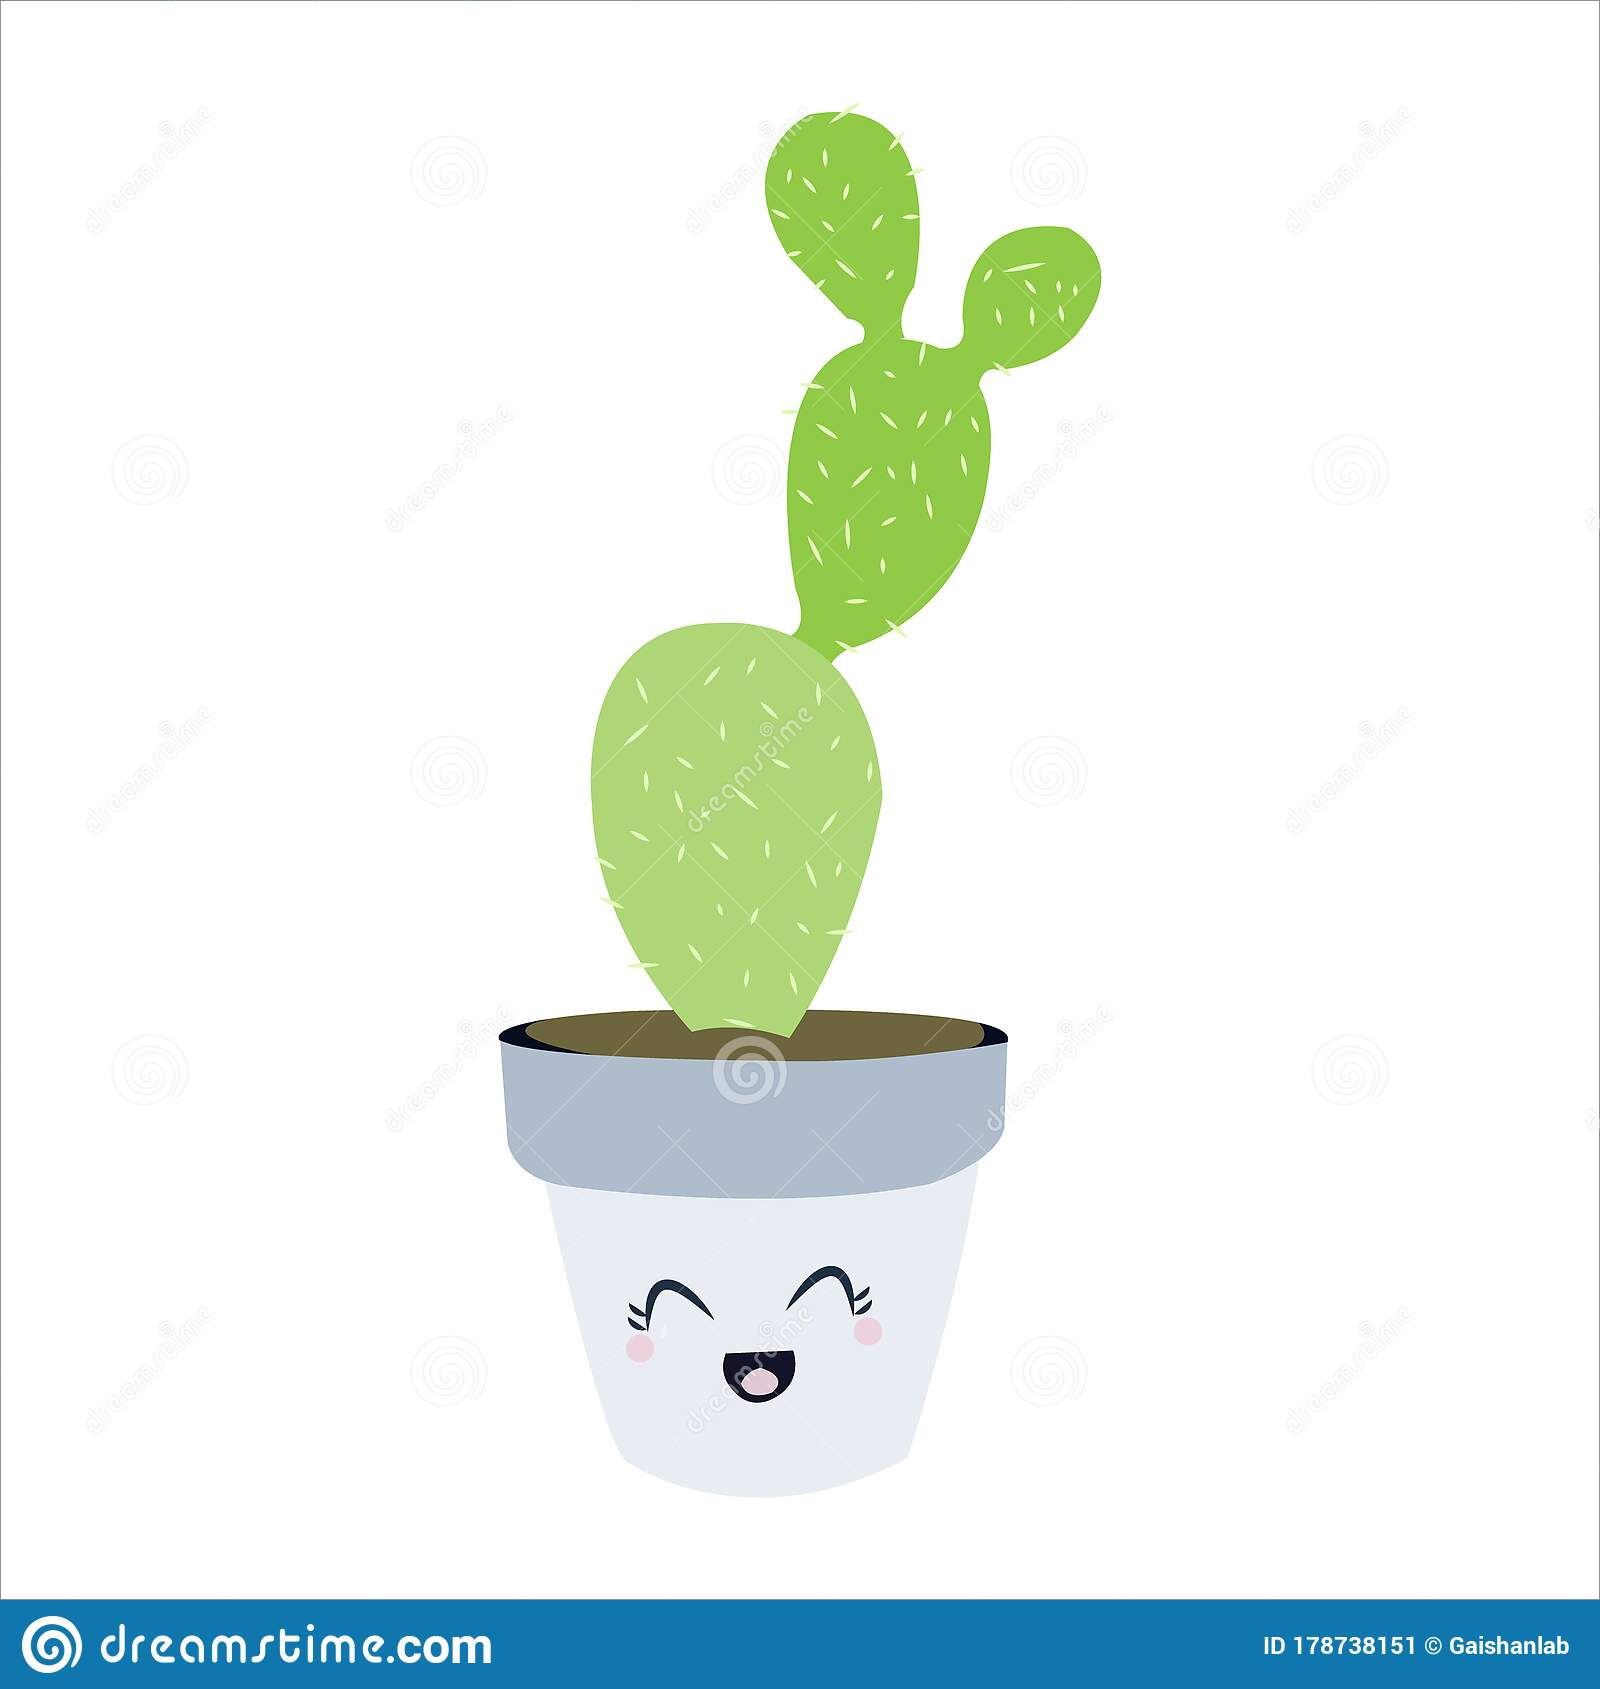 Cute Cactus Succulent Clip Art Illustration Botanical Cartoon Stock Vector Illustration Of White Cartoon 178738151